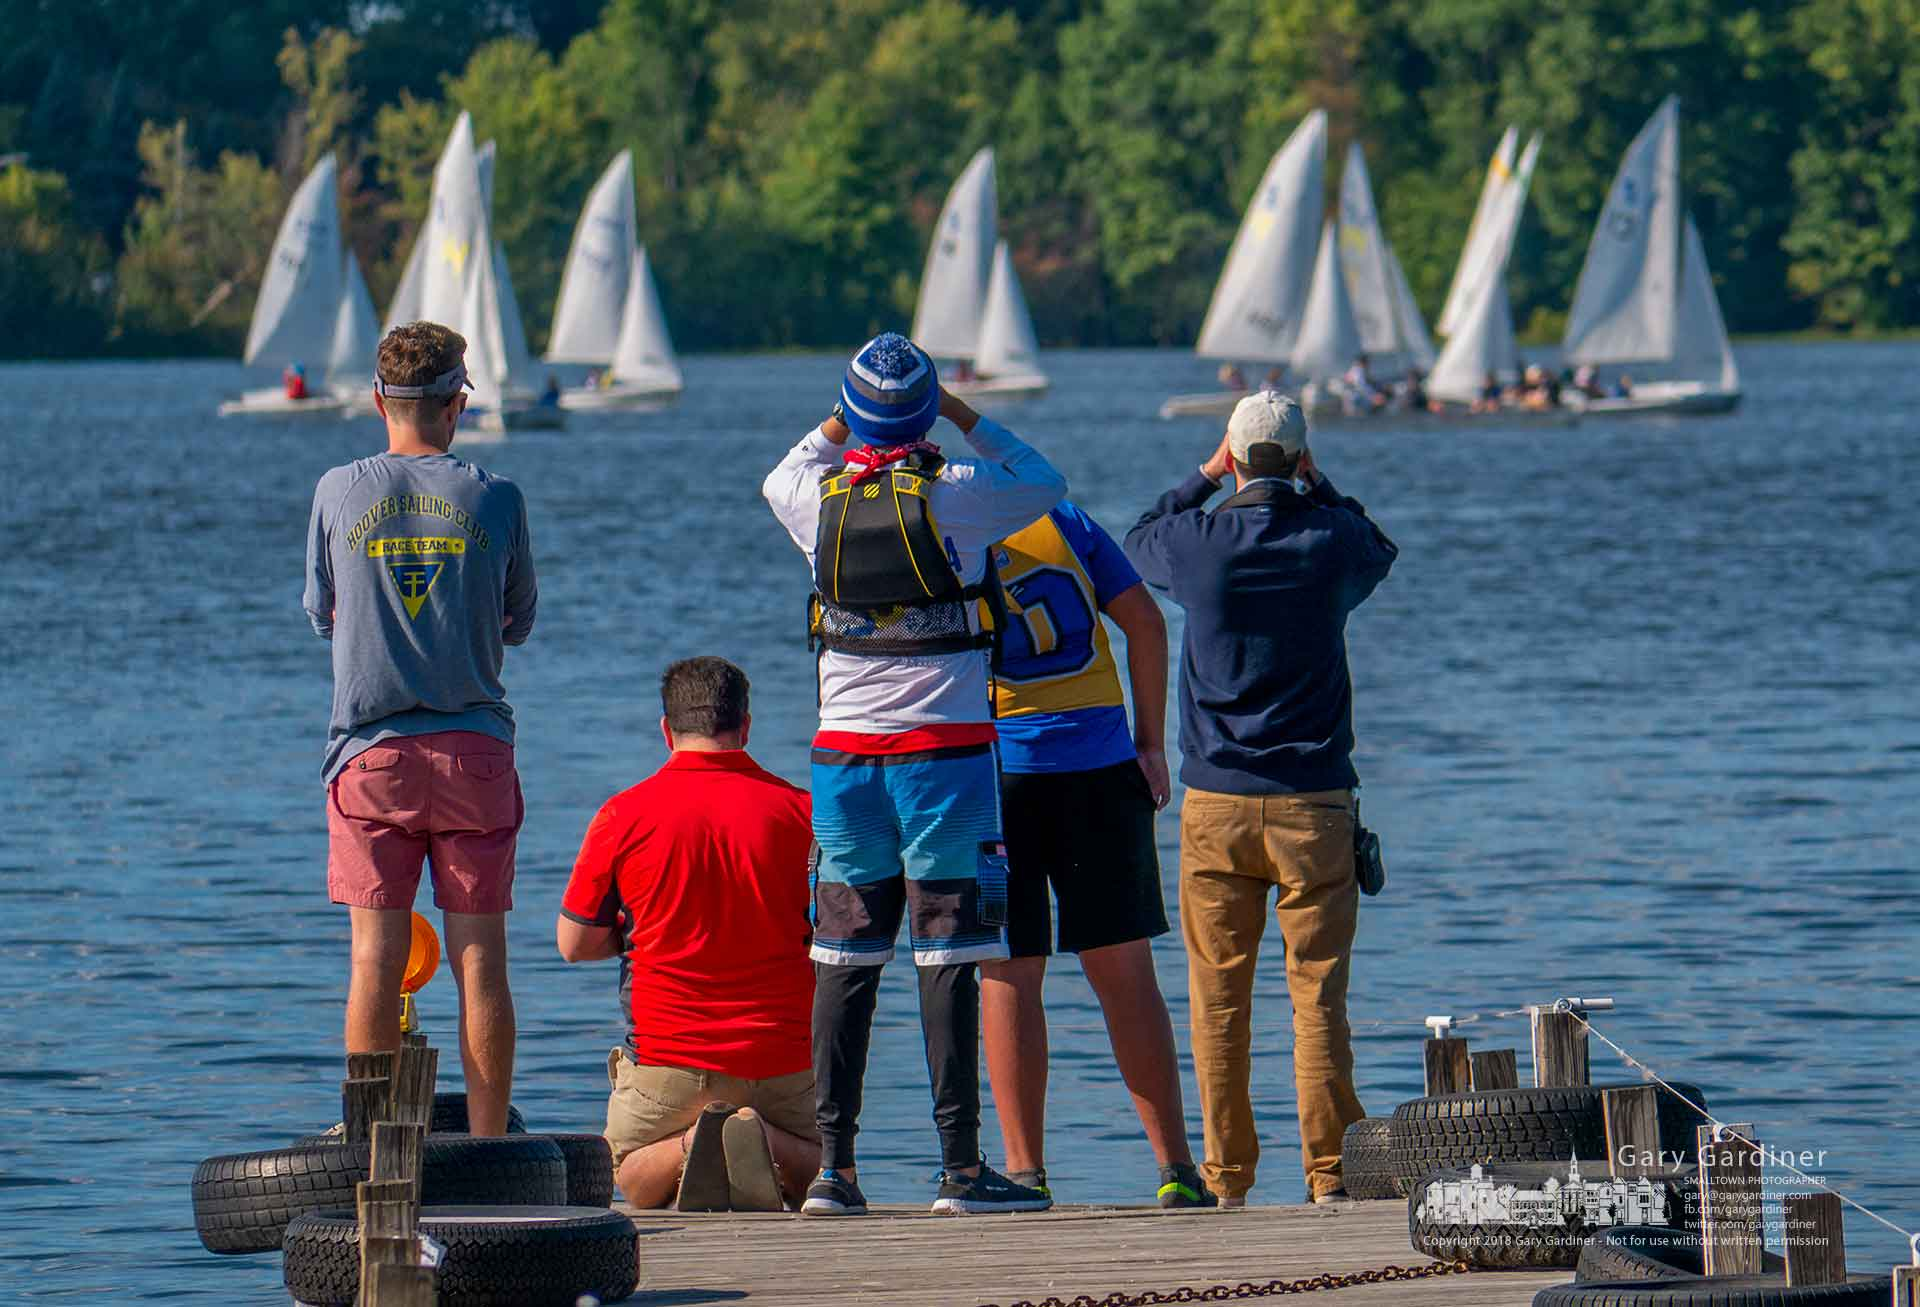 Family and friends stand at the end of one of the docks at Hoover Sailing Club to check the progress of sailors in the MISSA Great Oaks Qualifier on Hoover Reservoir. My Final Photo for Sept. 29, 2018.